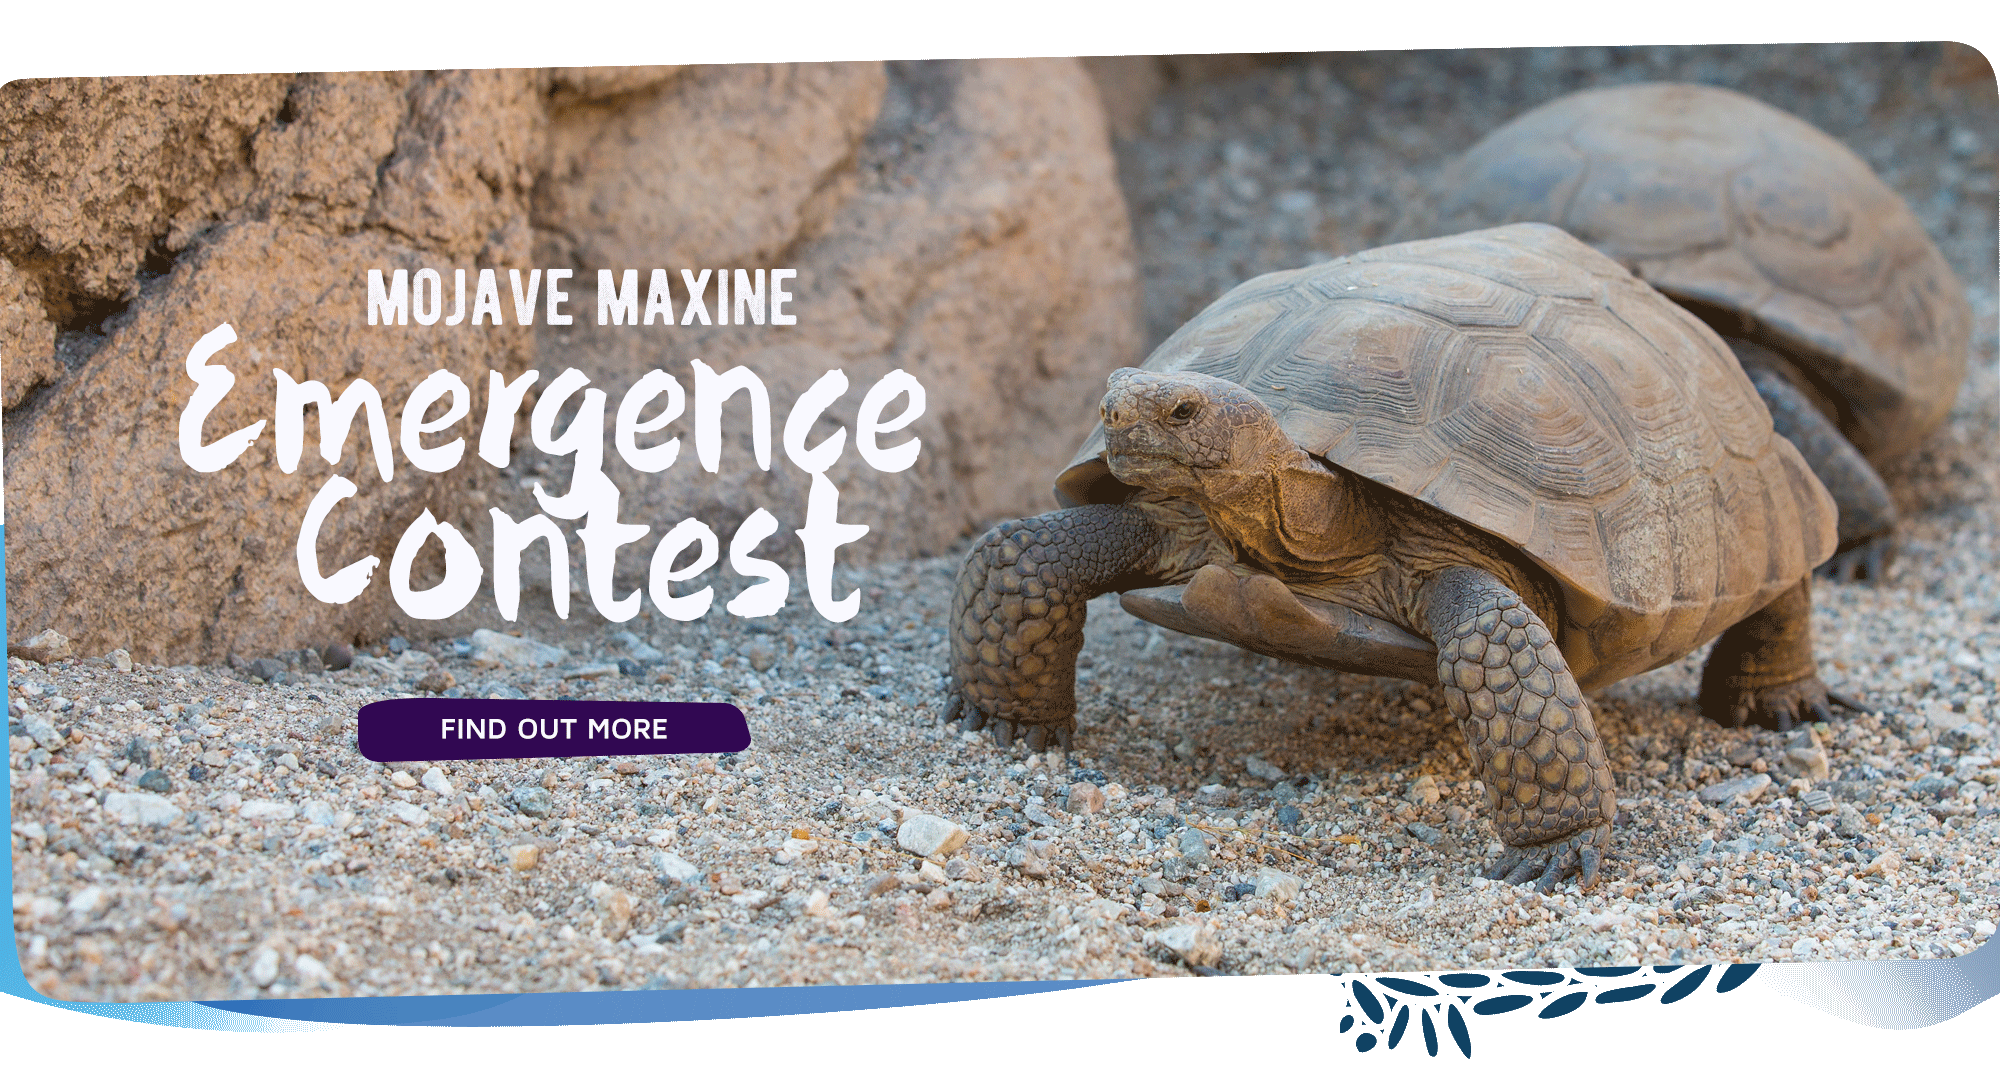 Mojave Maxine Emergence Contest. Click to find out more.